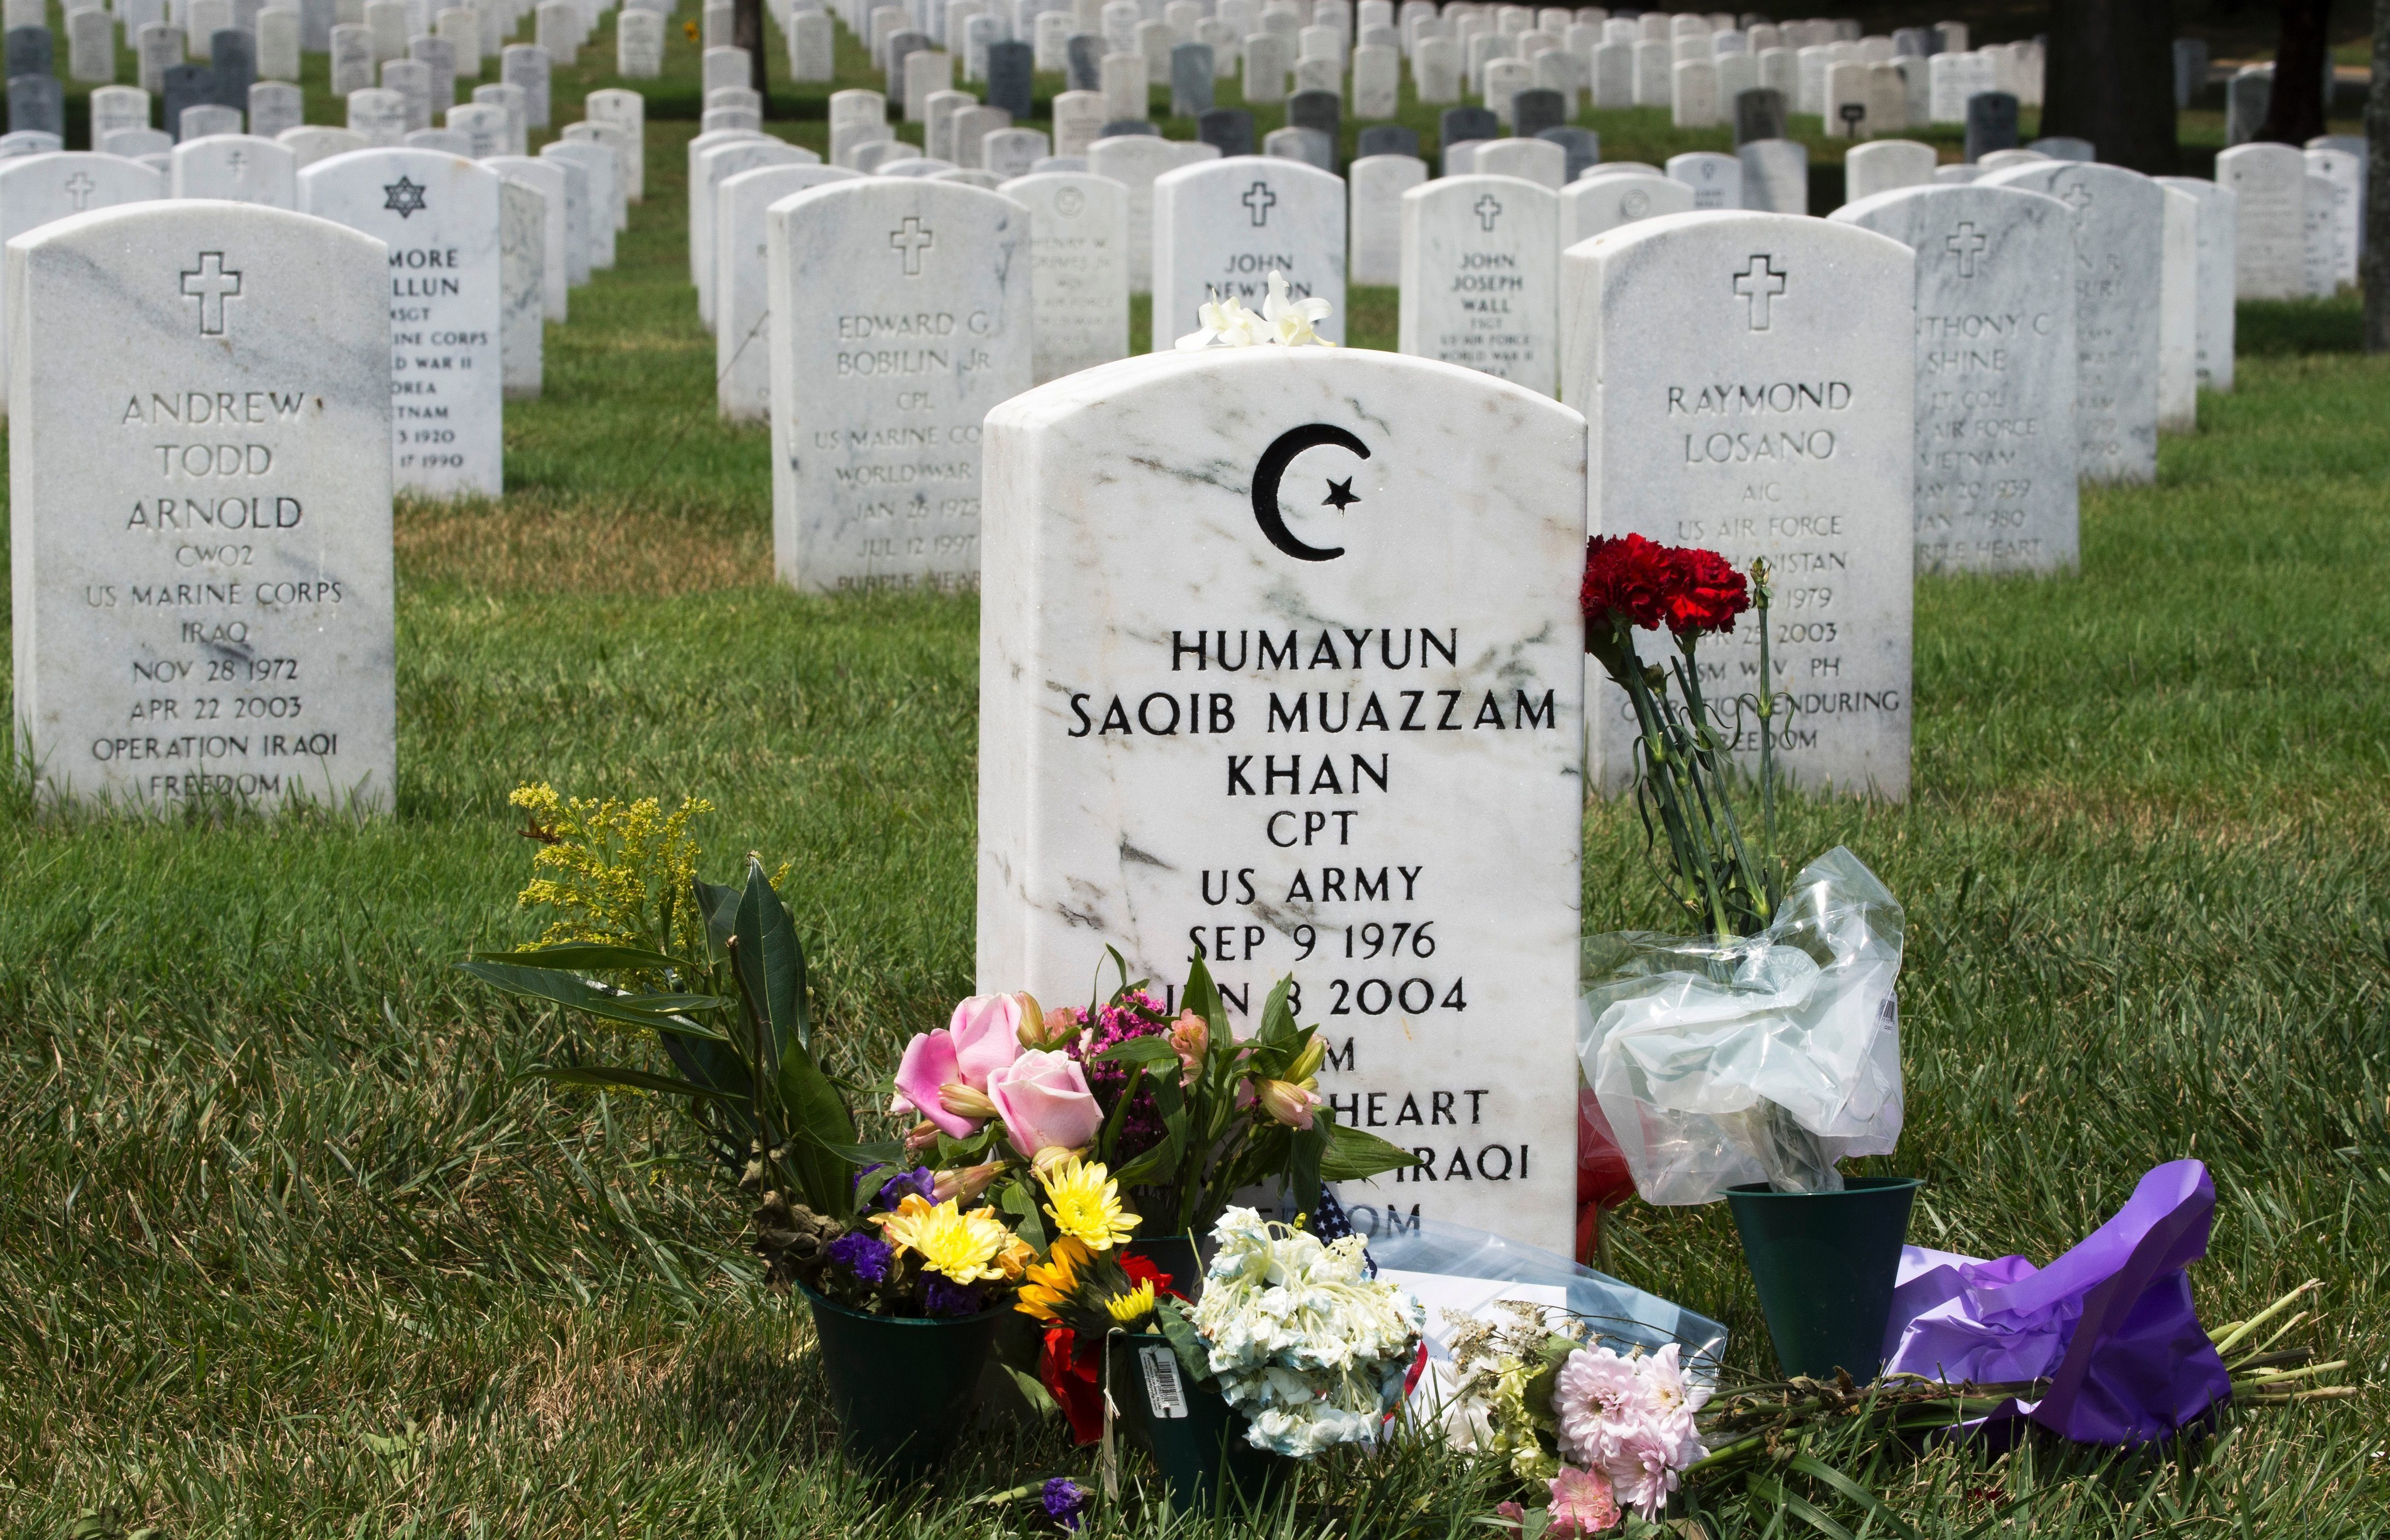 The grave marker for US Army Captain Humayun Saqib Muazzam Khan,who was killed in Iraq in 2004 in a roadside explosion, is seen August 1, 2016, in Section 60 of Arlington National Cemetery in Arlington, Virginia. The father of a slain Muslim American soldier assailed Donald Trump as a 'black soul' July 31 in an impassioned exchange with the Republican presidential candidate over the qualities required in a US leader. Khizr Khan electrified the Democratic convention last week with a tribute to his fallen son that ended with a steely rebuke that Trump had 'sacrificed nothing' for his country.  / AFP / Paul J. Richards        (Photo credit should read PAUL J. RICHARDS/AFP/Getty Images)